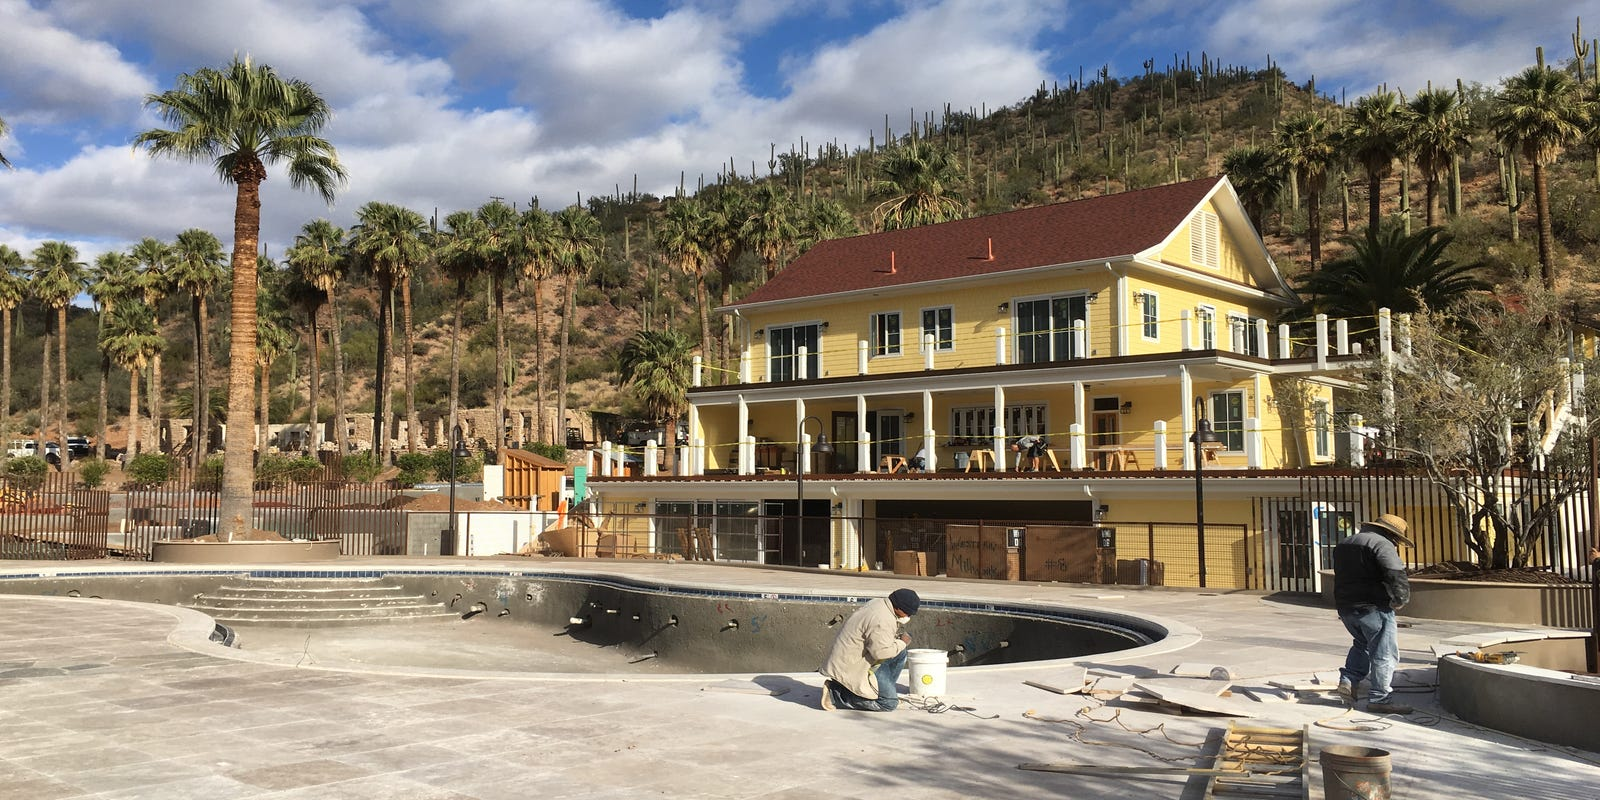 Historic Castle Hot Springs resort to reopen in October